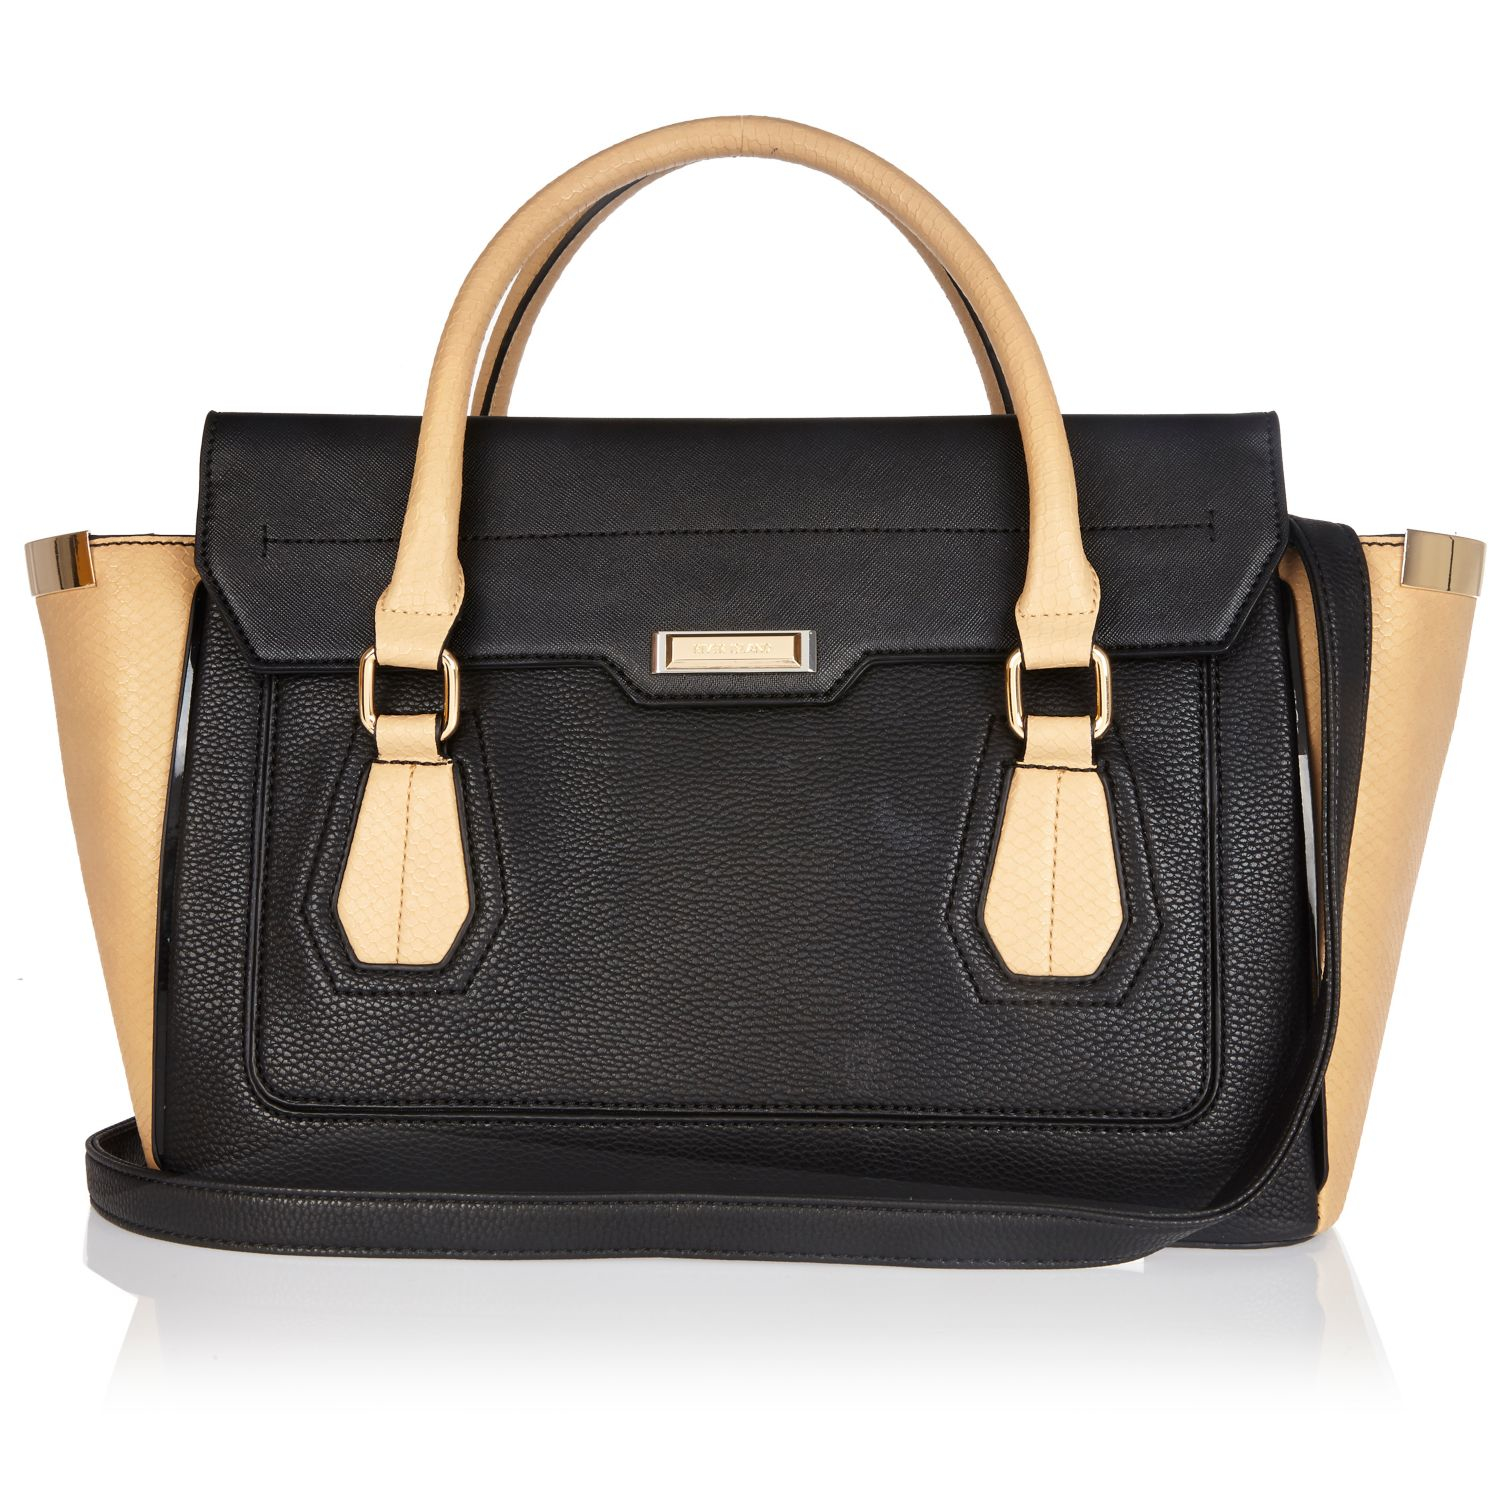 River Island Black Structured Winged Tote Handbag